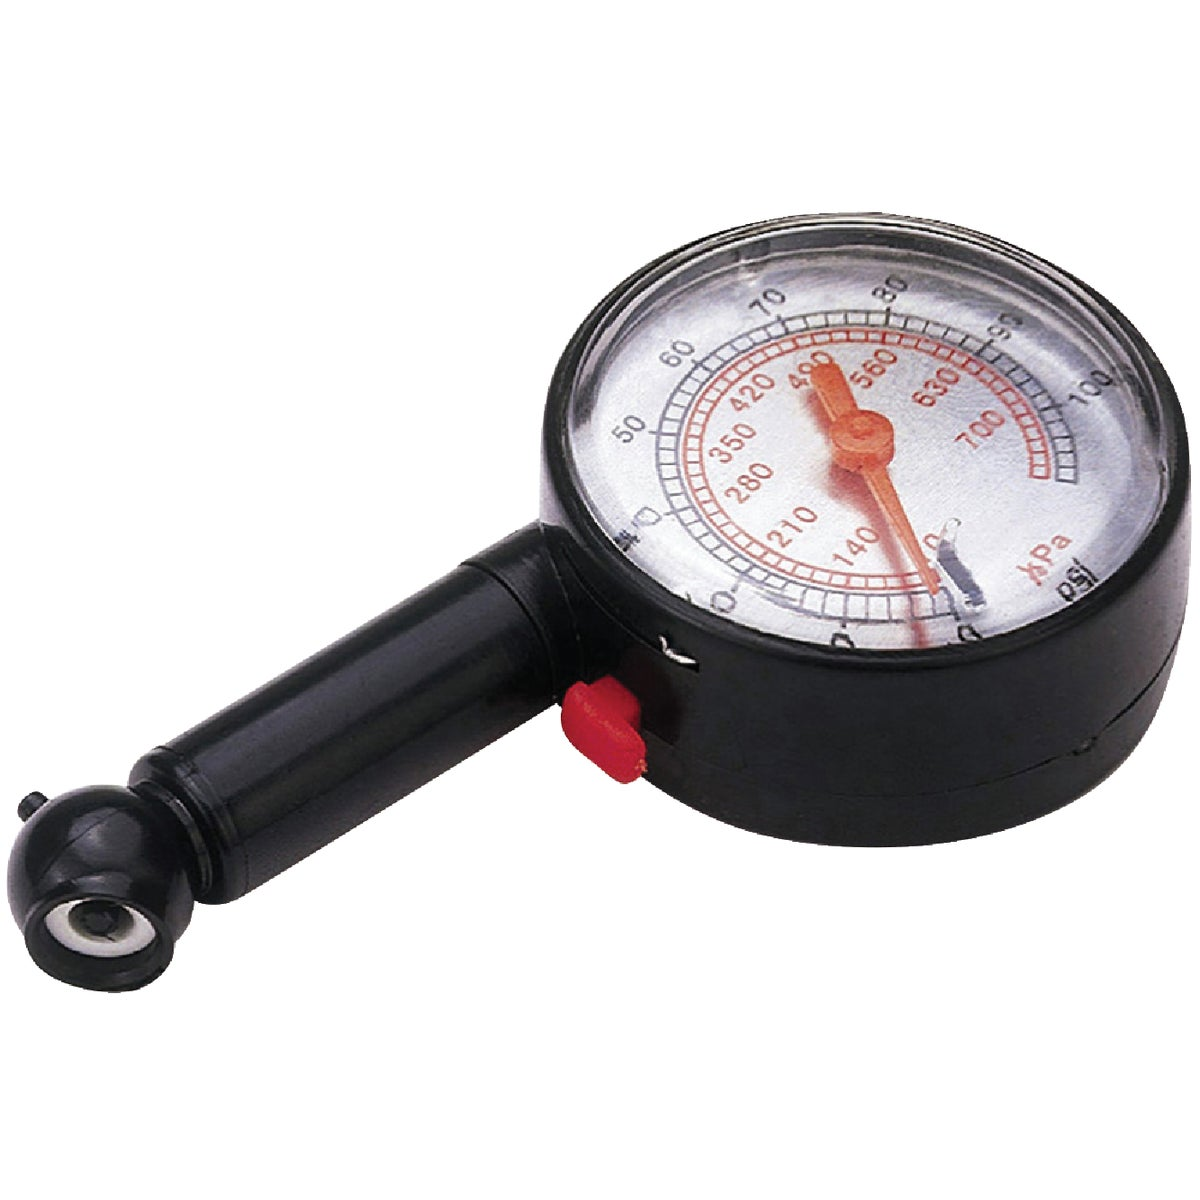 60PSI DIAL TIRE GAUGE